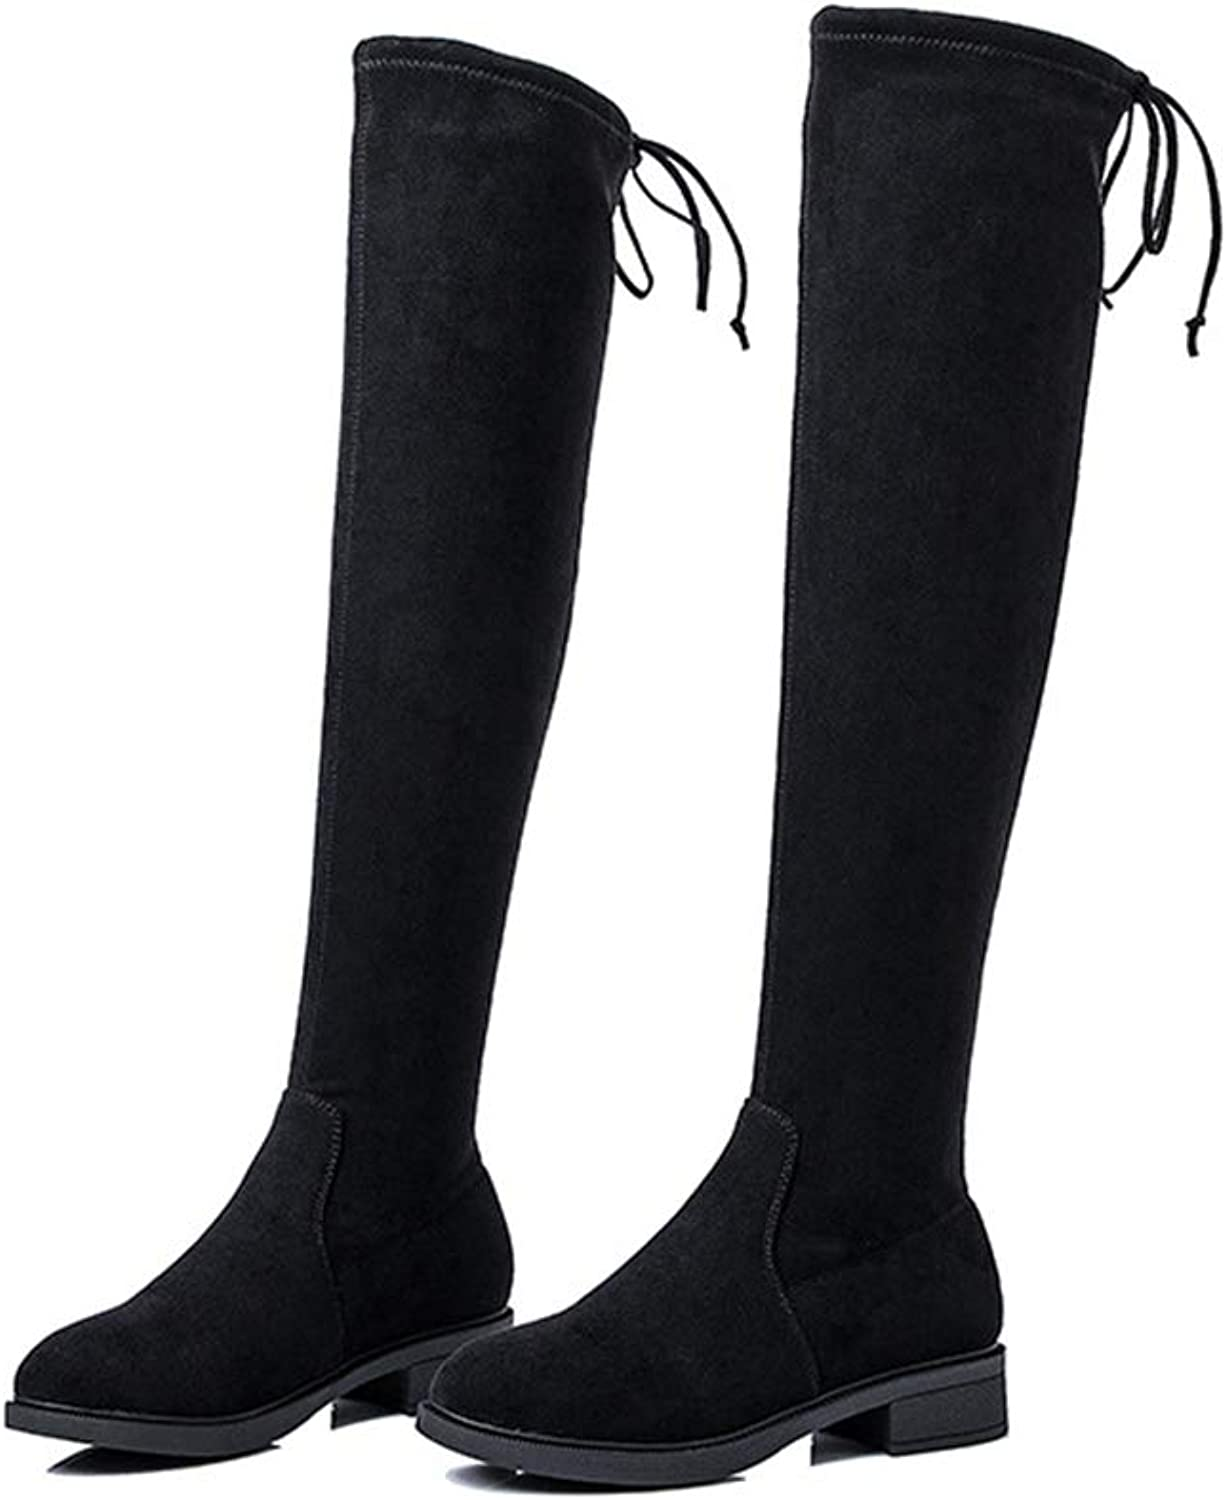 FORTUN Fashion Long Boots Women's Flat Boots Over The Knee Boots